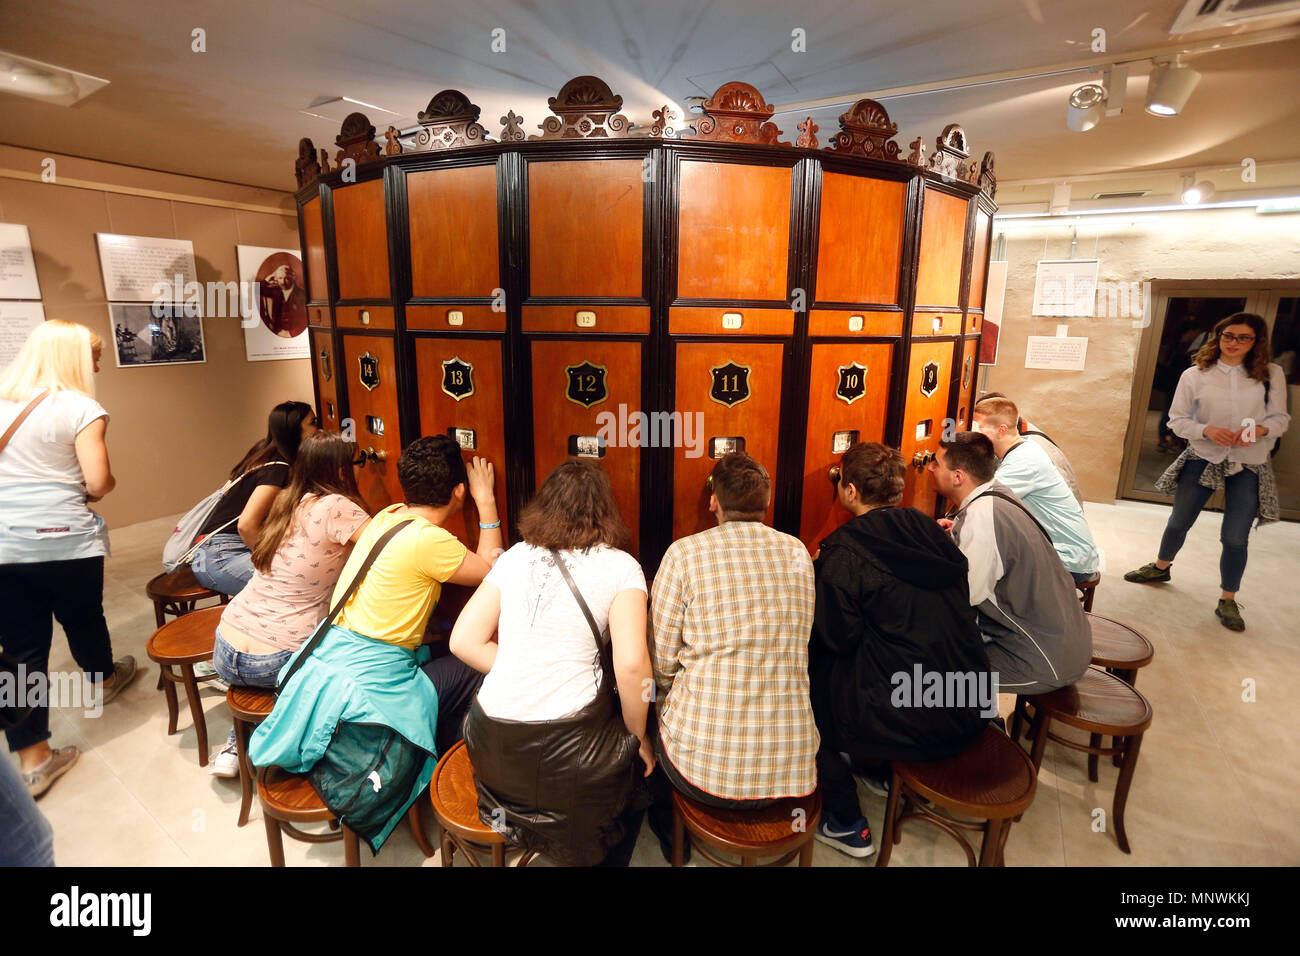 Belgrade, Serbia.  19th May, 2018. Visitors try out old movie watching device during The Night of the Museums cultural event in Belgrade, Serbia on May 19, 2018. Credit: Predrag Milosavljevic/Xinhua/Alamy Live News - Stock Image